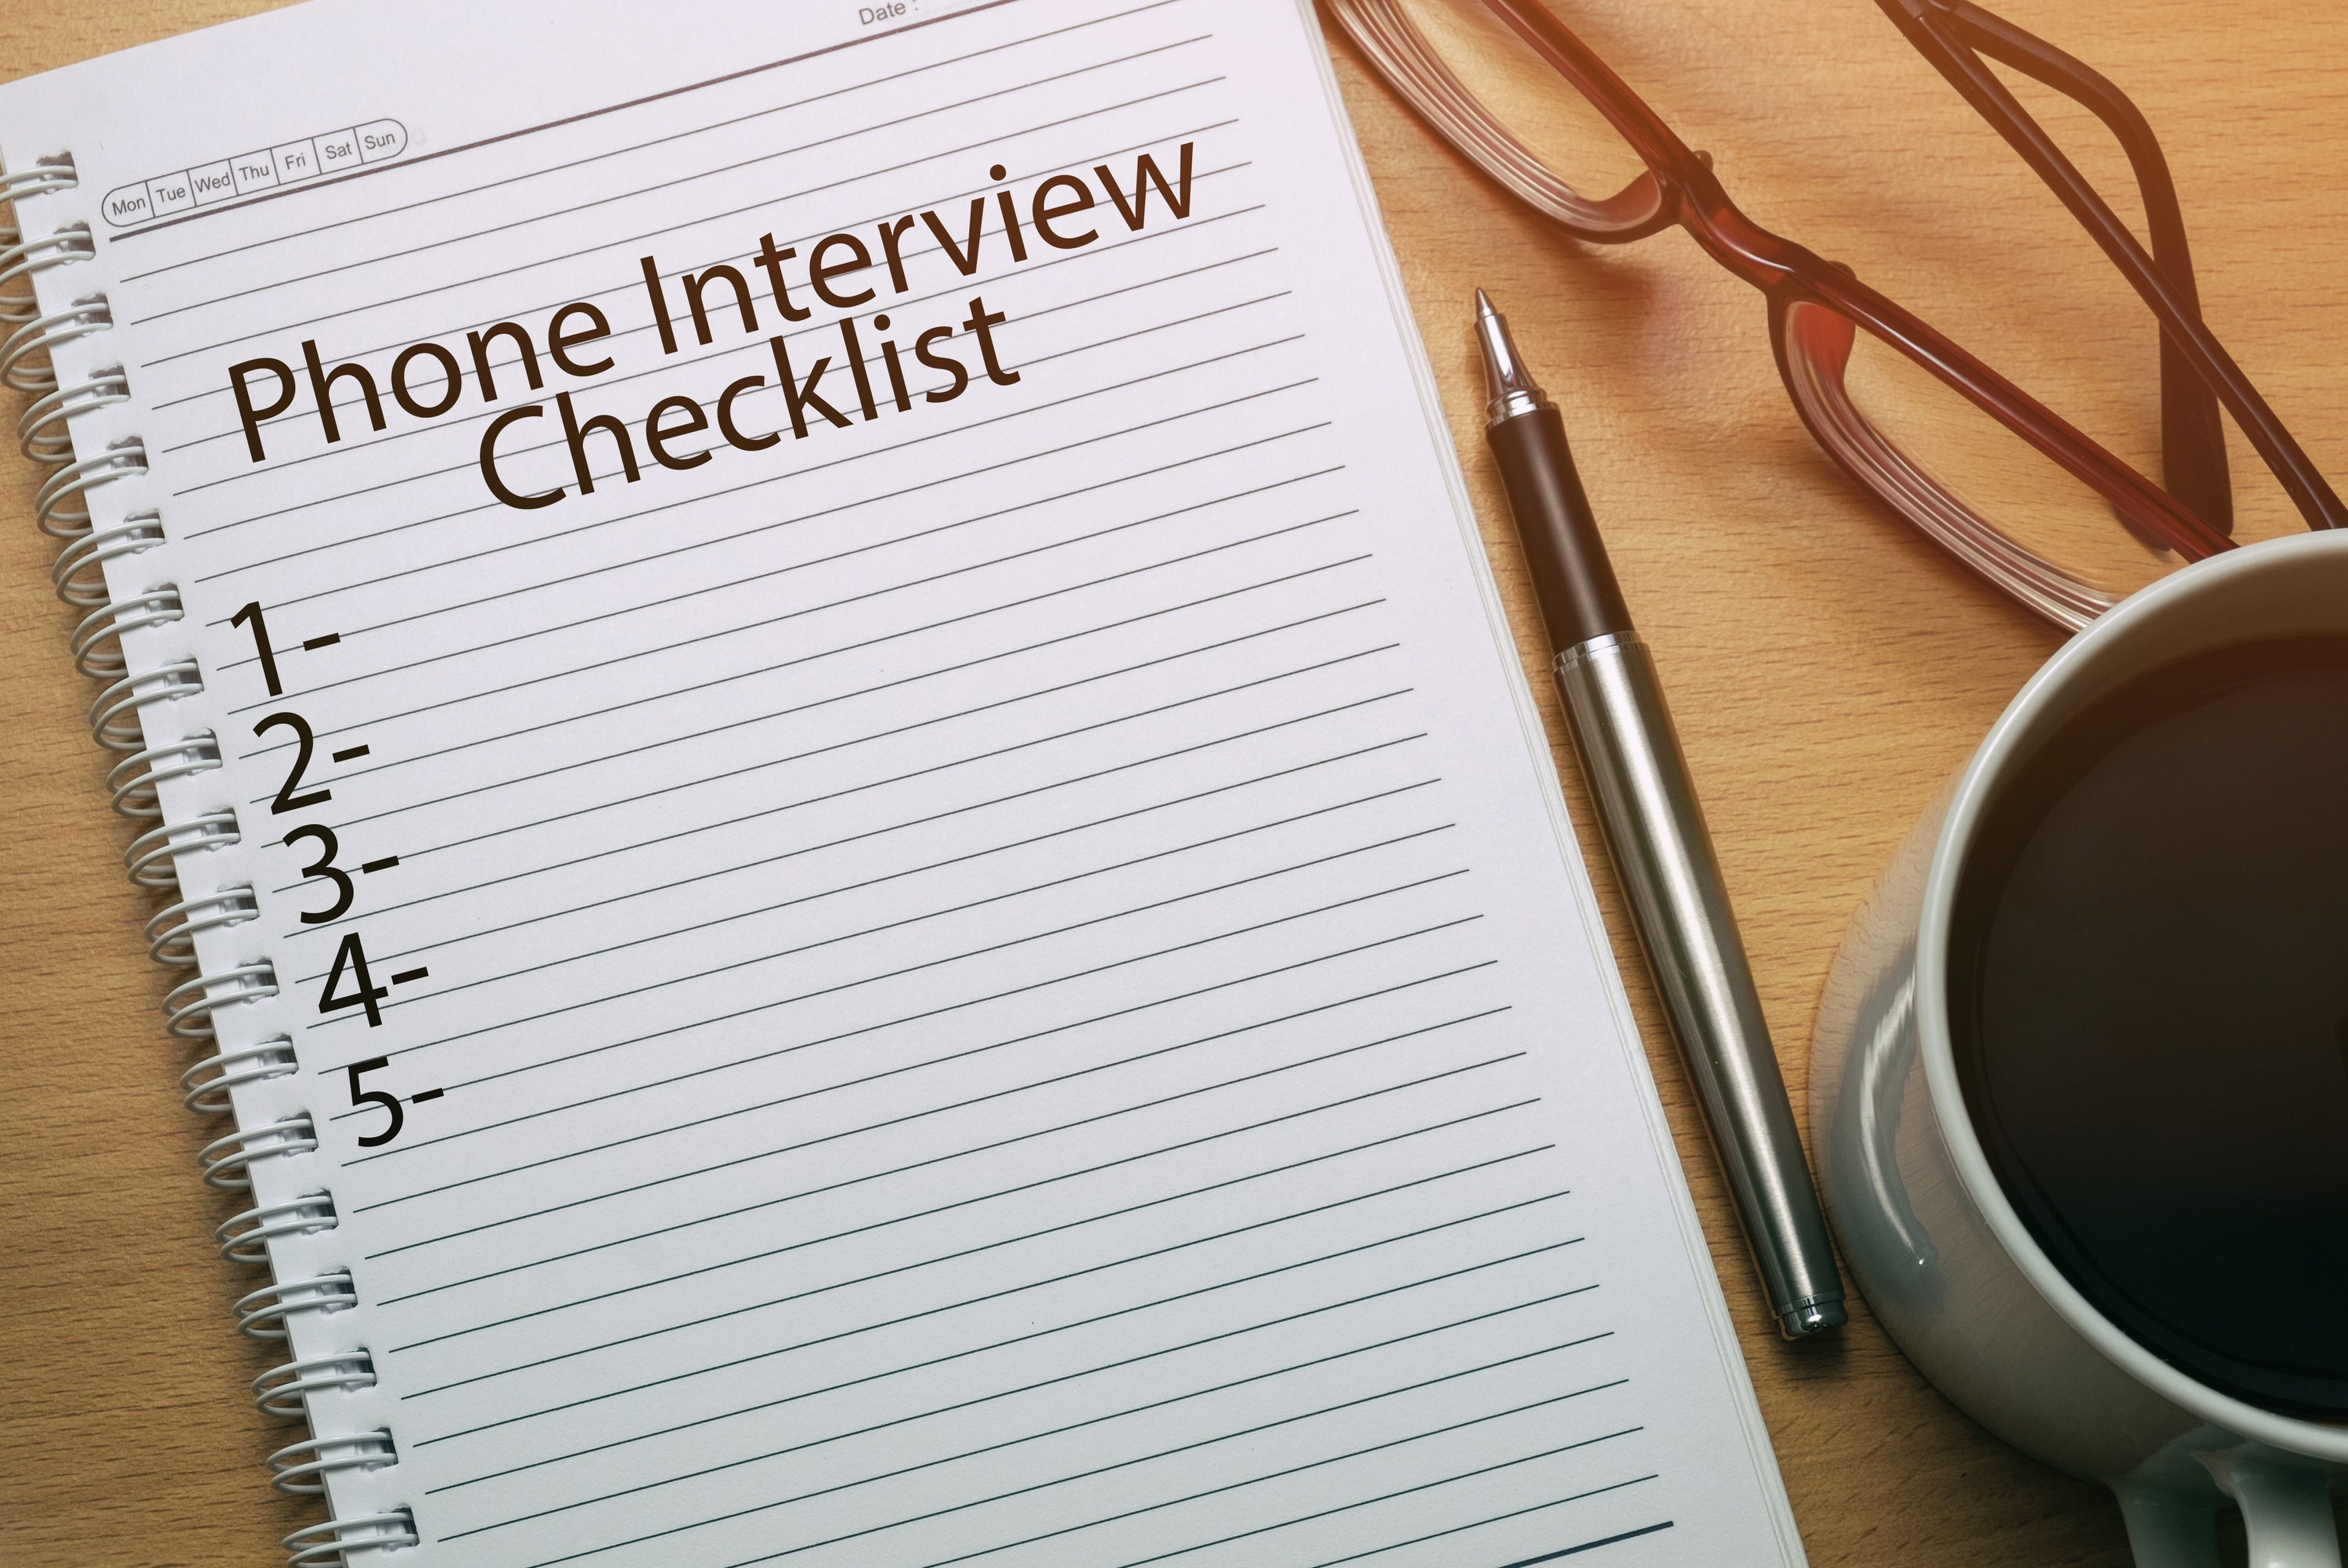 How to Prepare for Phone Interview Questions – Etiquette, Tips & Tricks